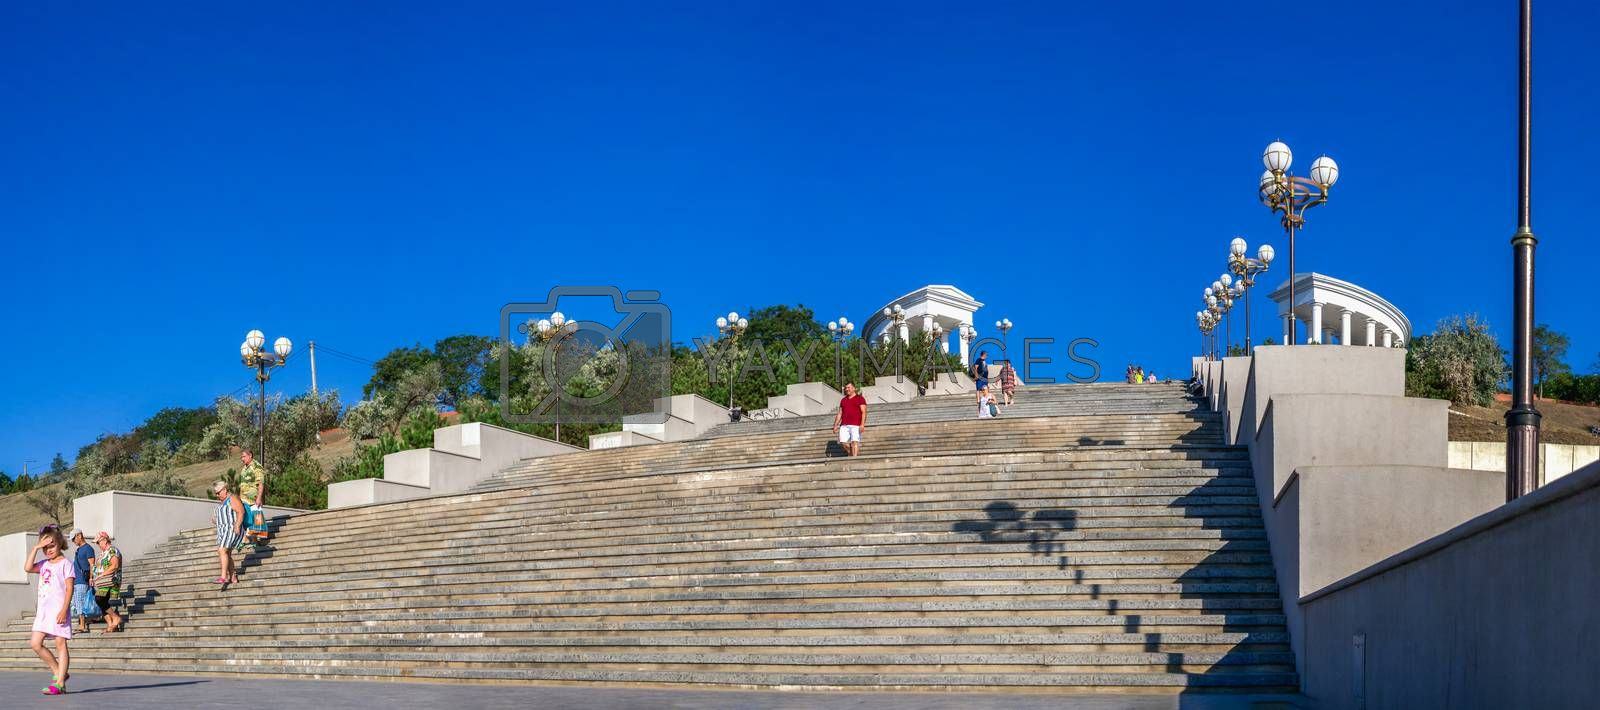 Royalty free image of Maritime Stairs in Chernomorsk, Ukraine by Multipedia